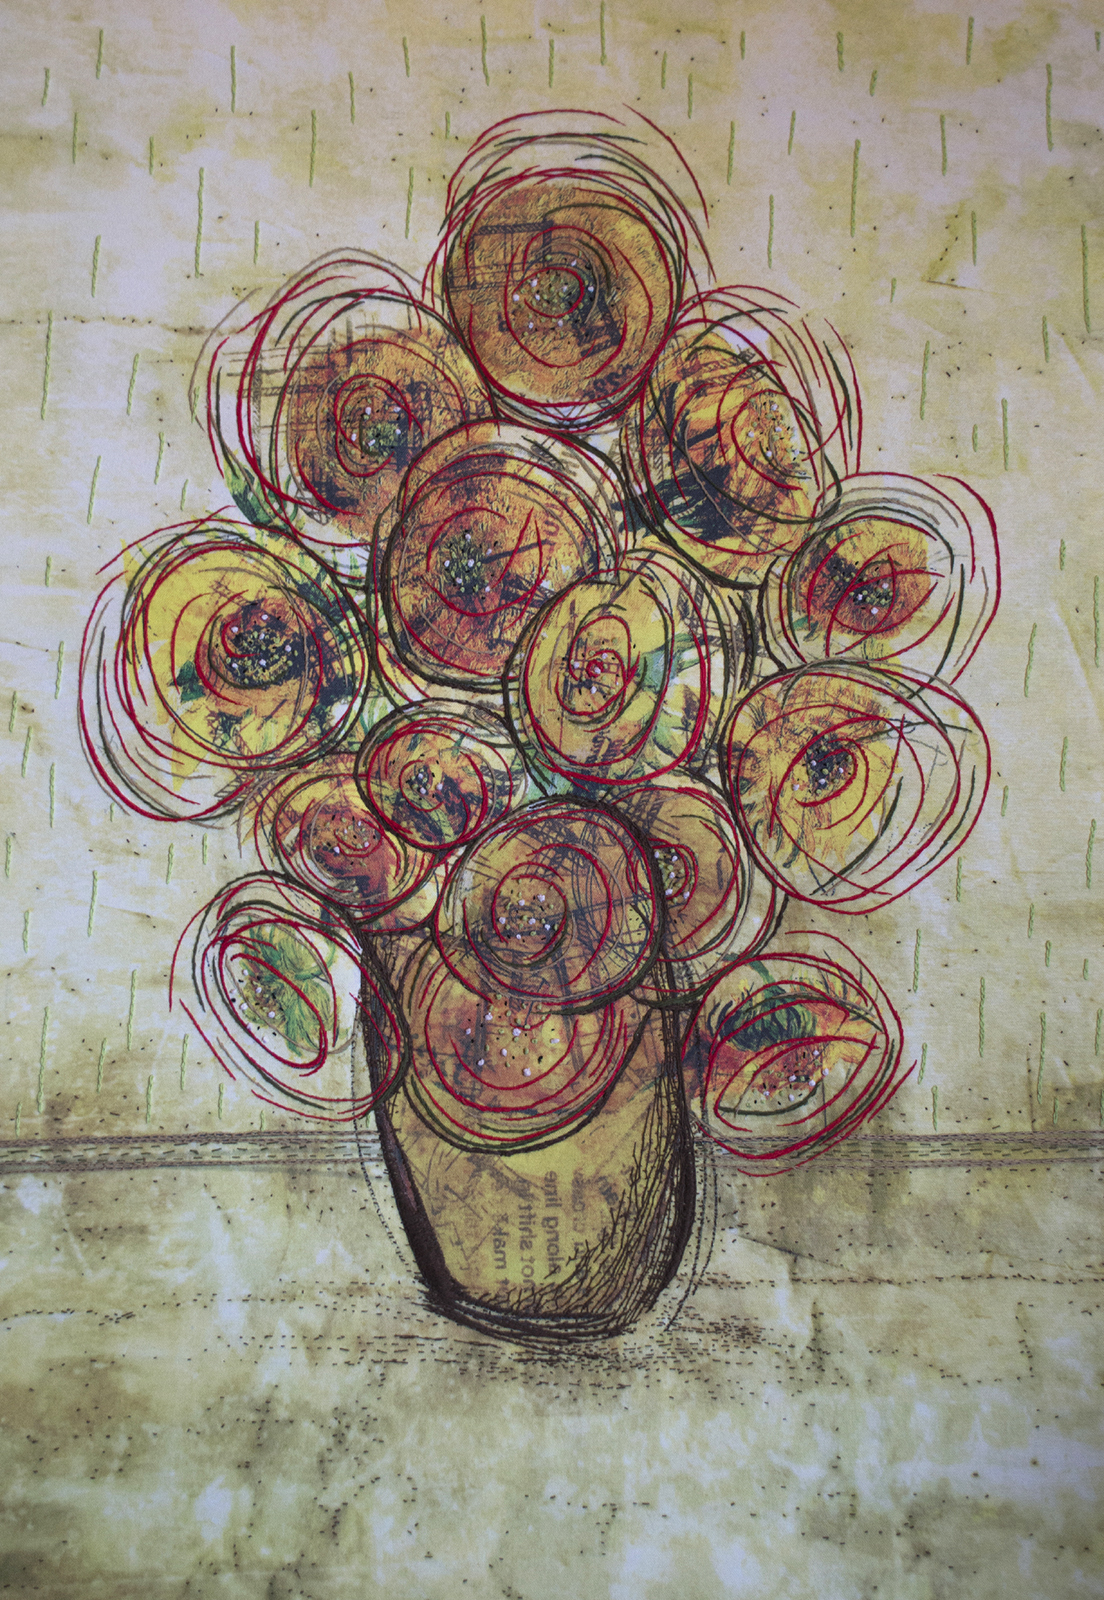 """""""Flowers by Vincent"""" (hand collaged with paper, converted to digital image, manipulated and printed on canvas, with hand embroidery and hand stitching) by Mitzi Alexander, Iowa State University senior in interdisciplinary design"""